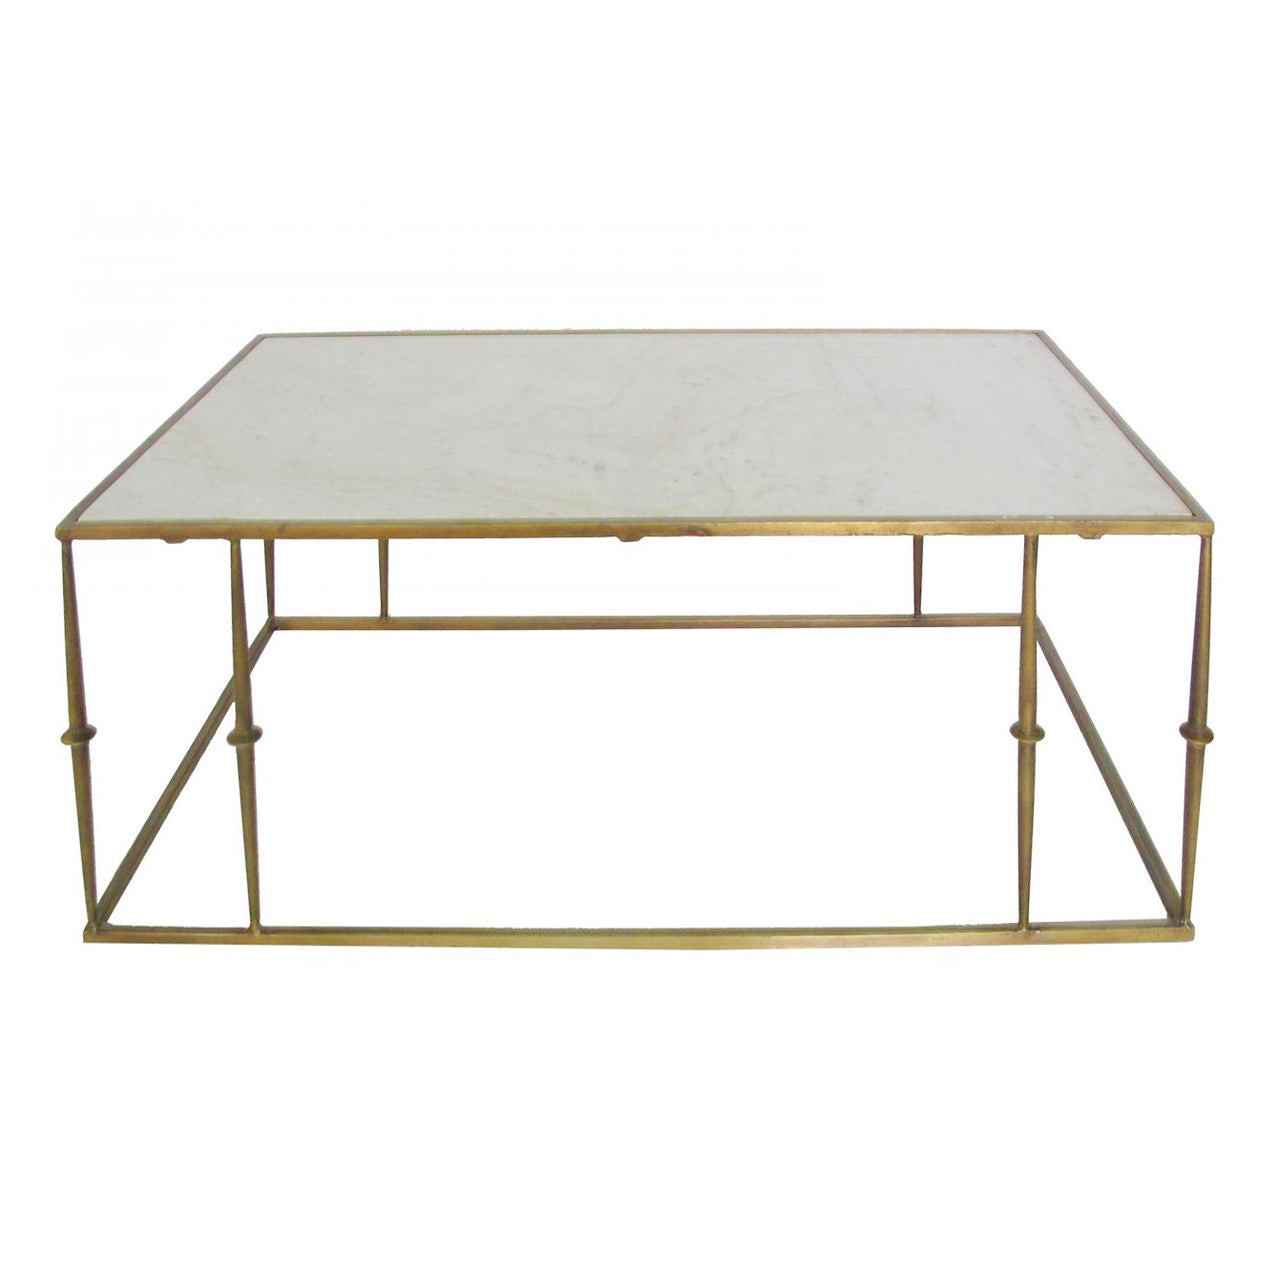 Marble Top Coffee Table - Broken Marble